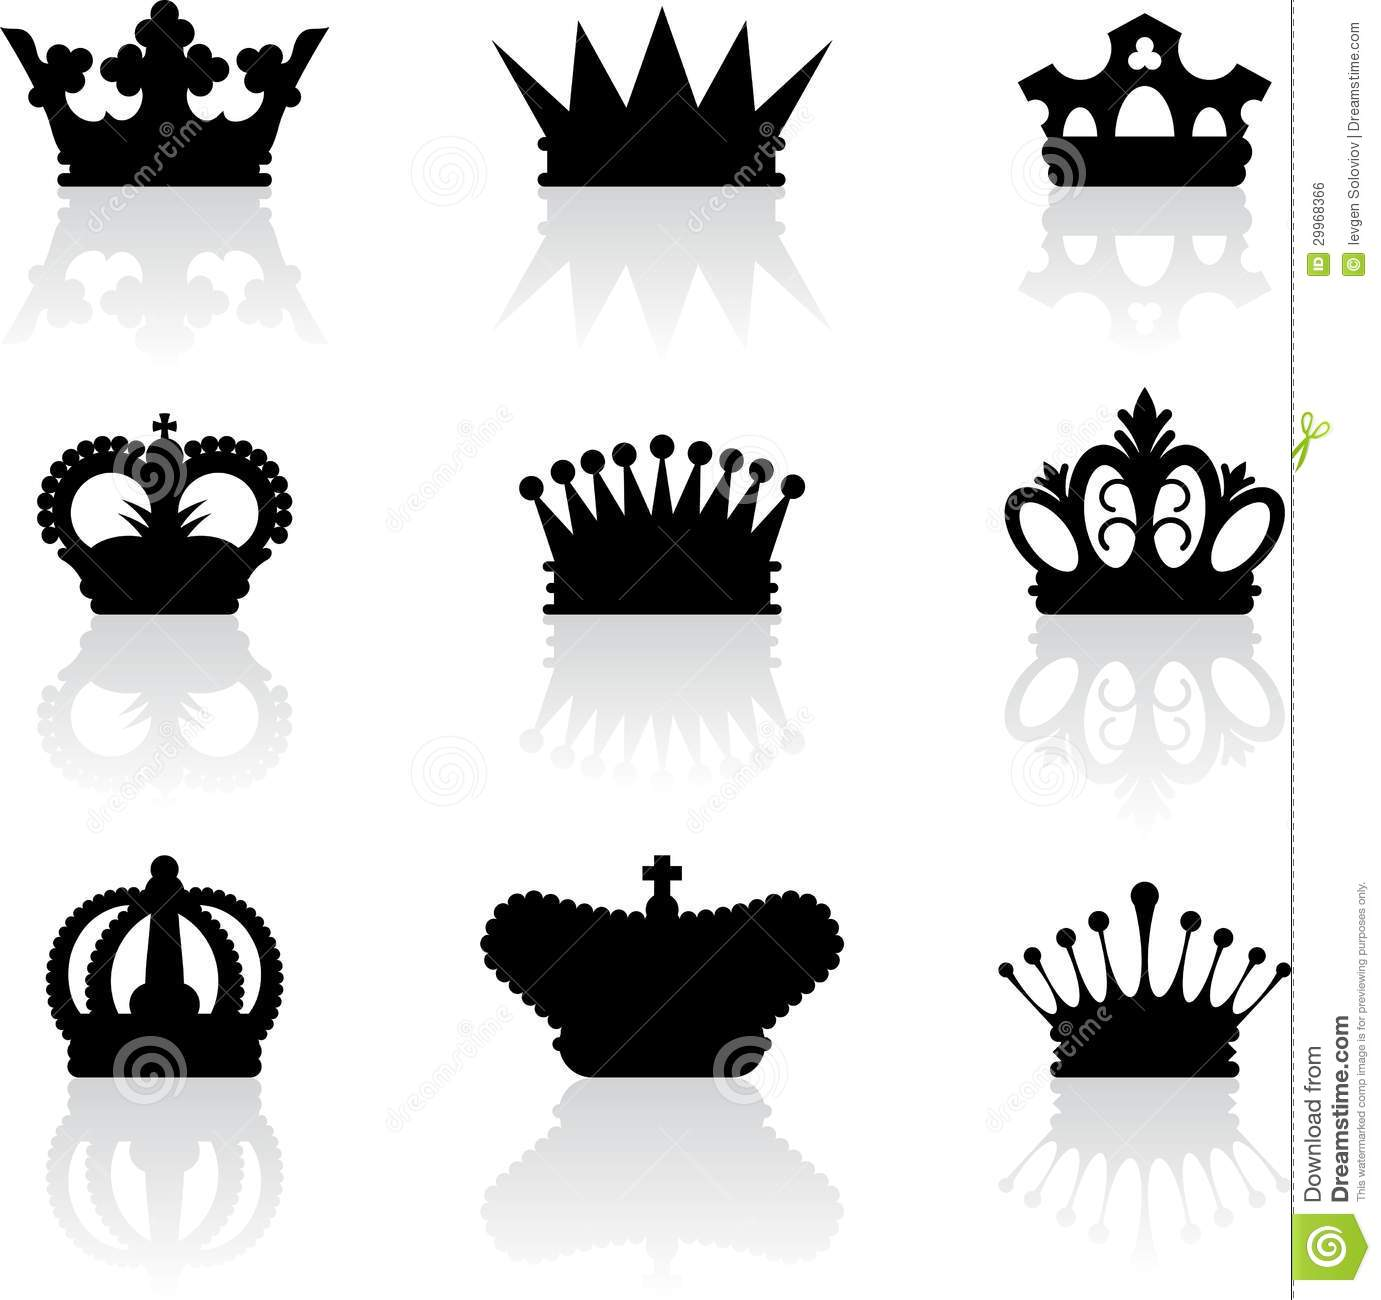 King crown icons stock vector. Illustration of emperor ...